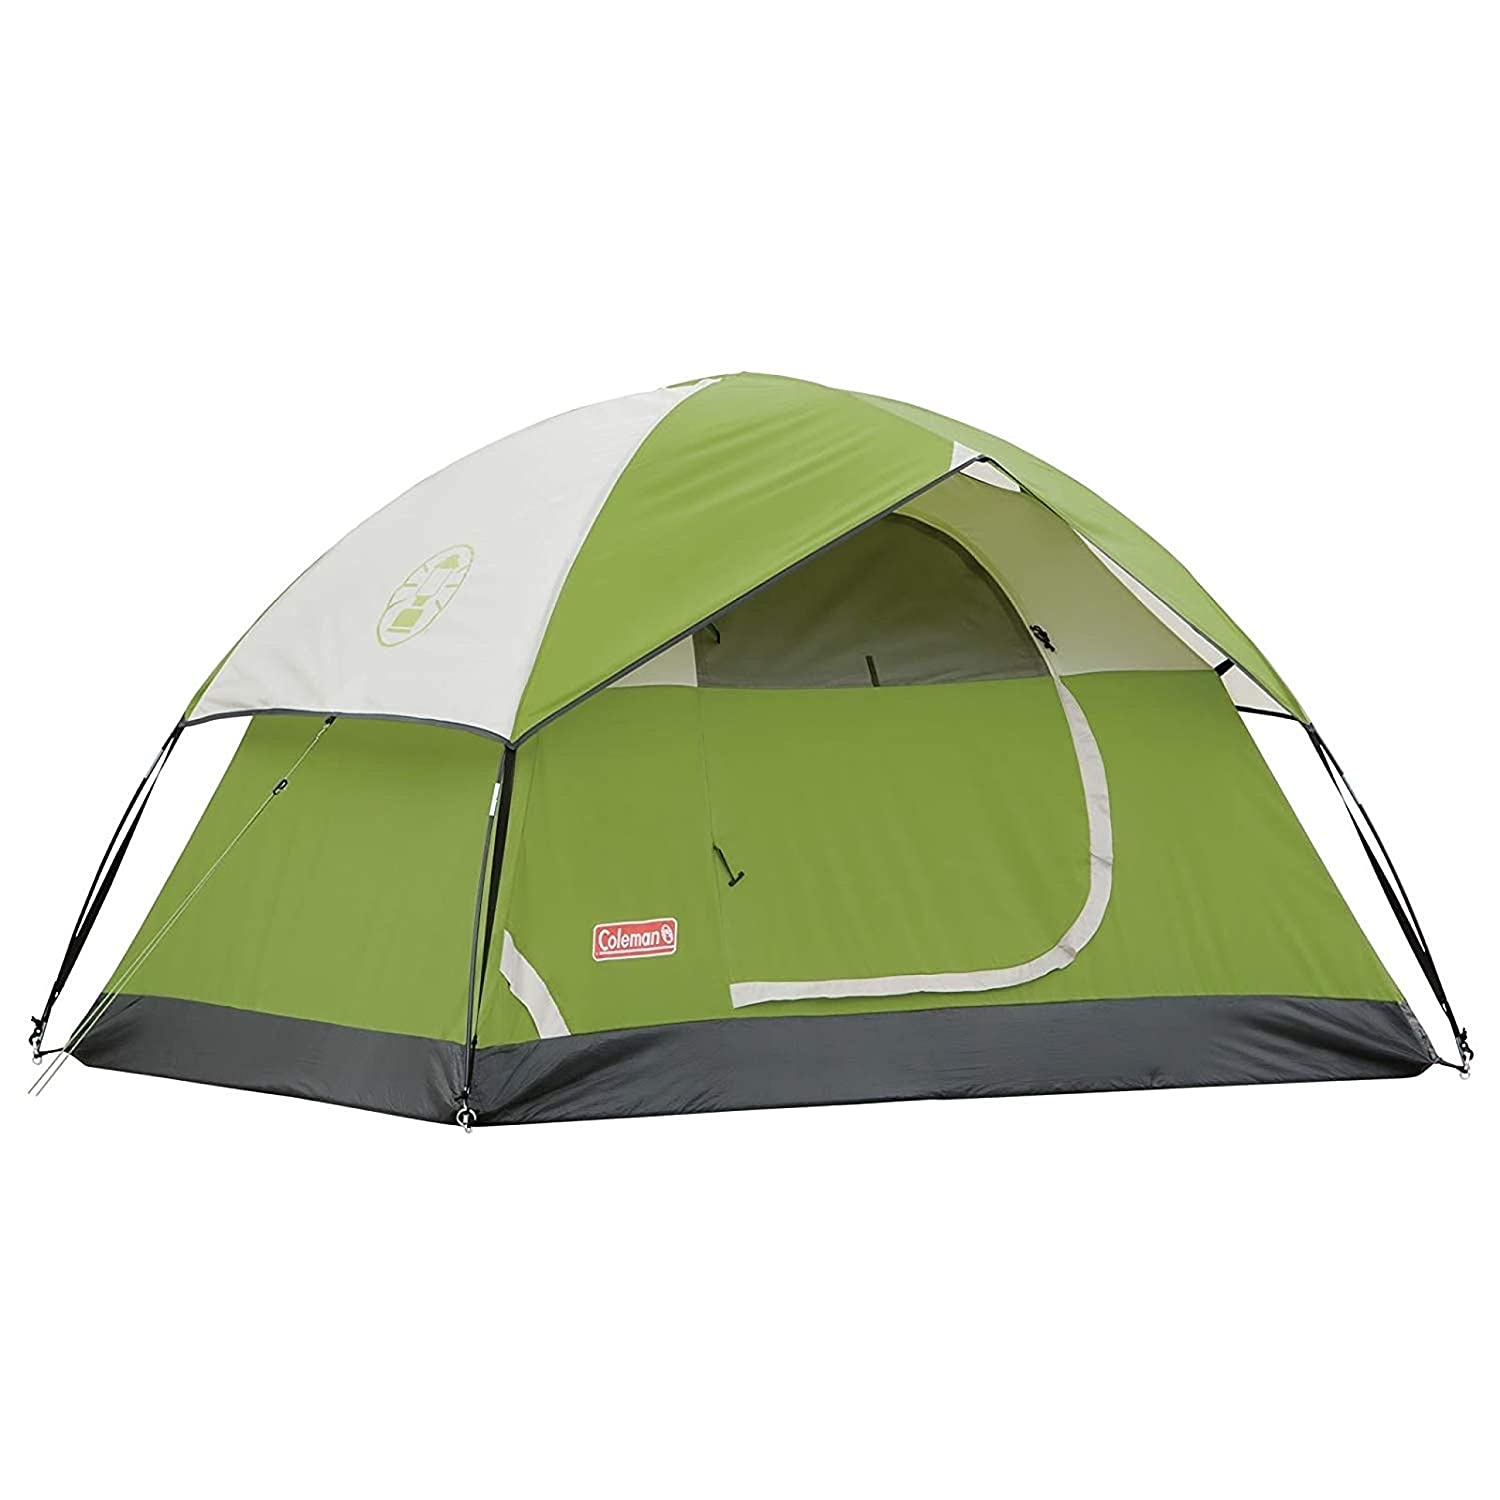 Coleman Sundome 2-Person Dome Tent, Best Dome Tents